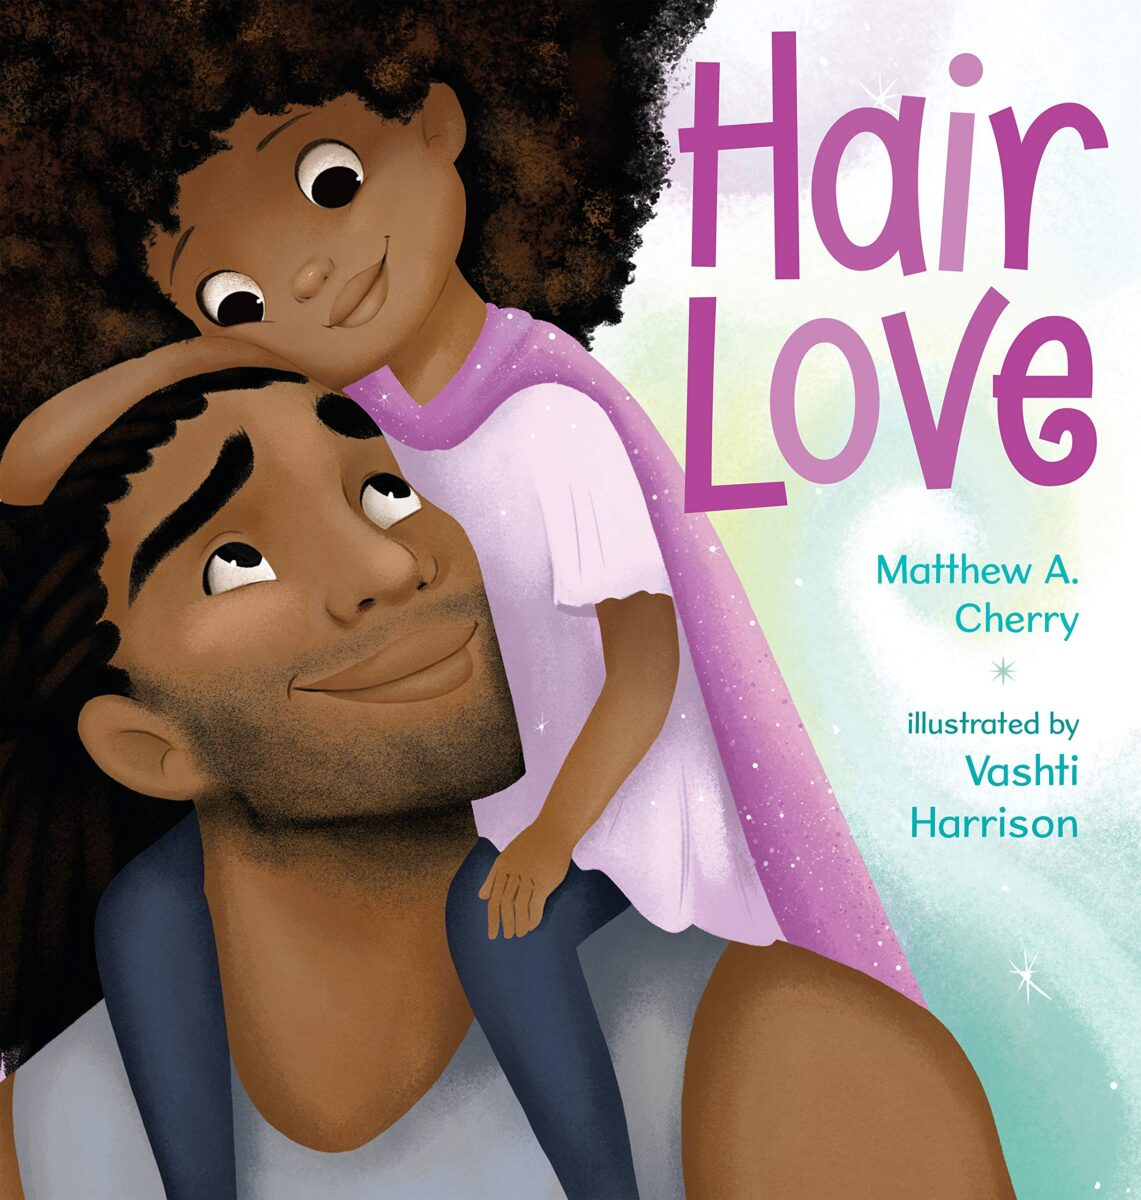 Book cover for Hair Love by Matthew A. Cherry